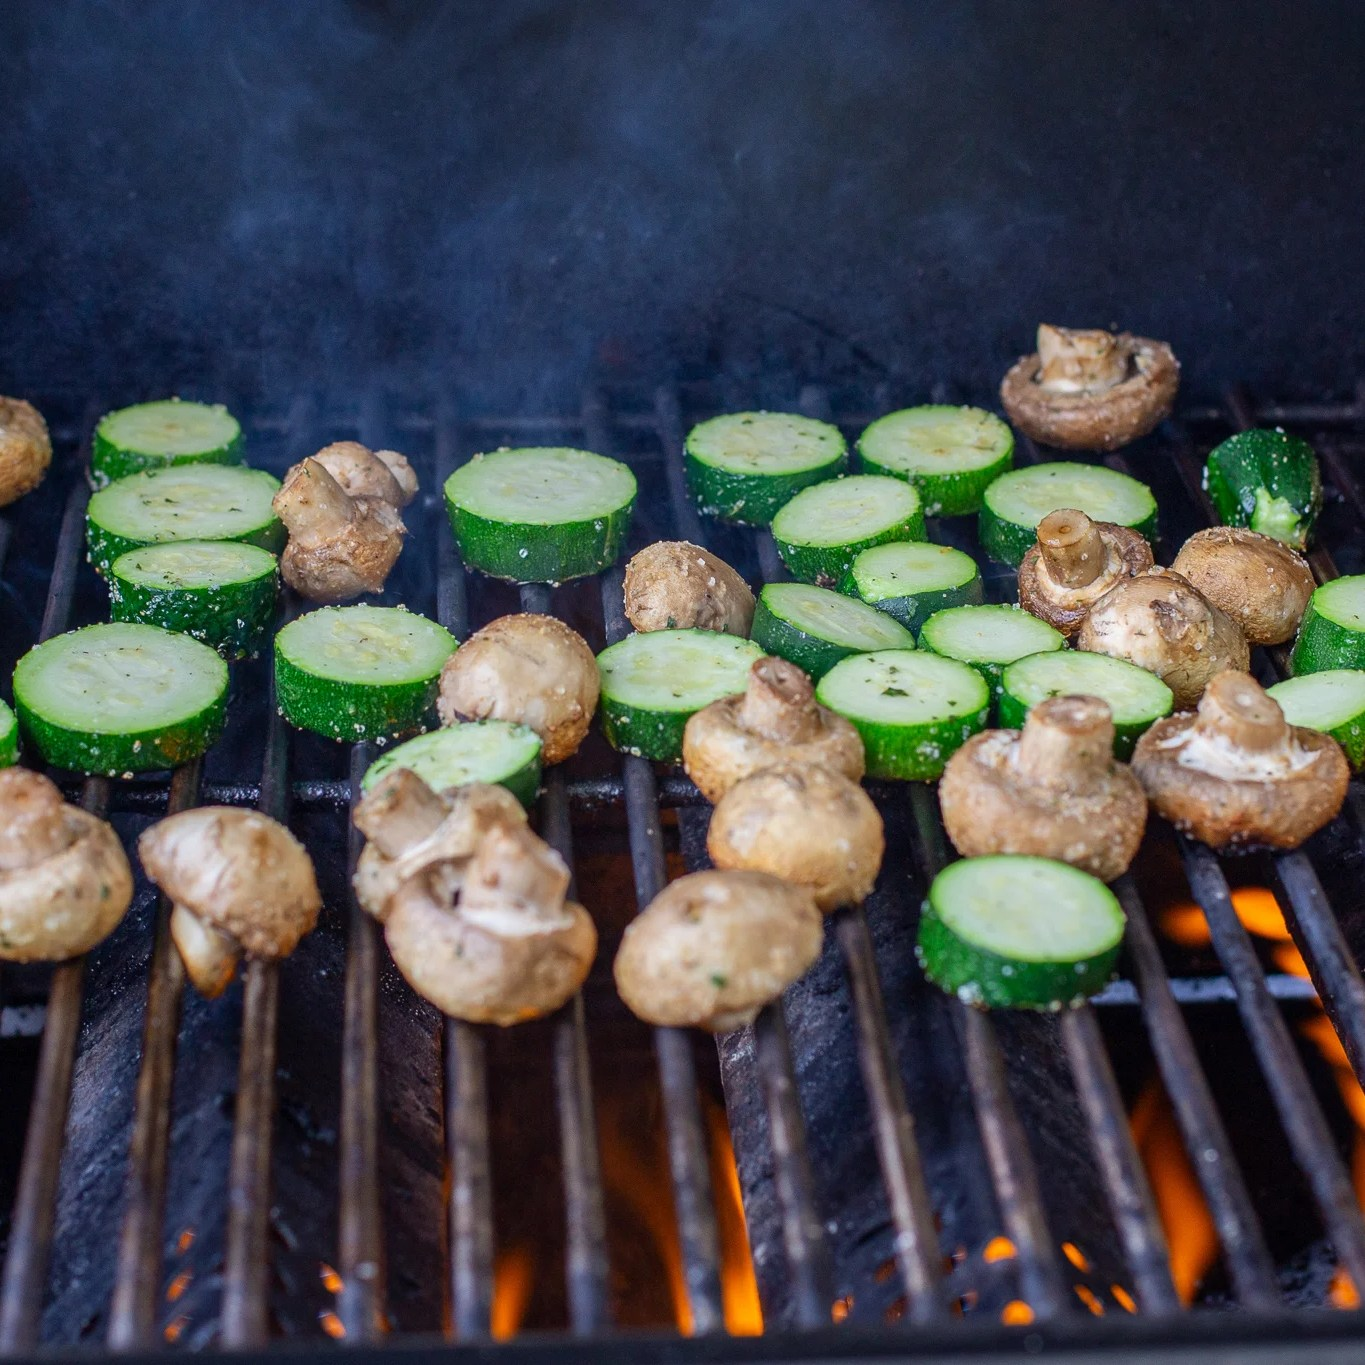 zucchini and mushrooms on a grill